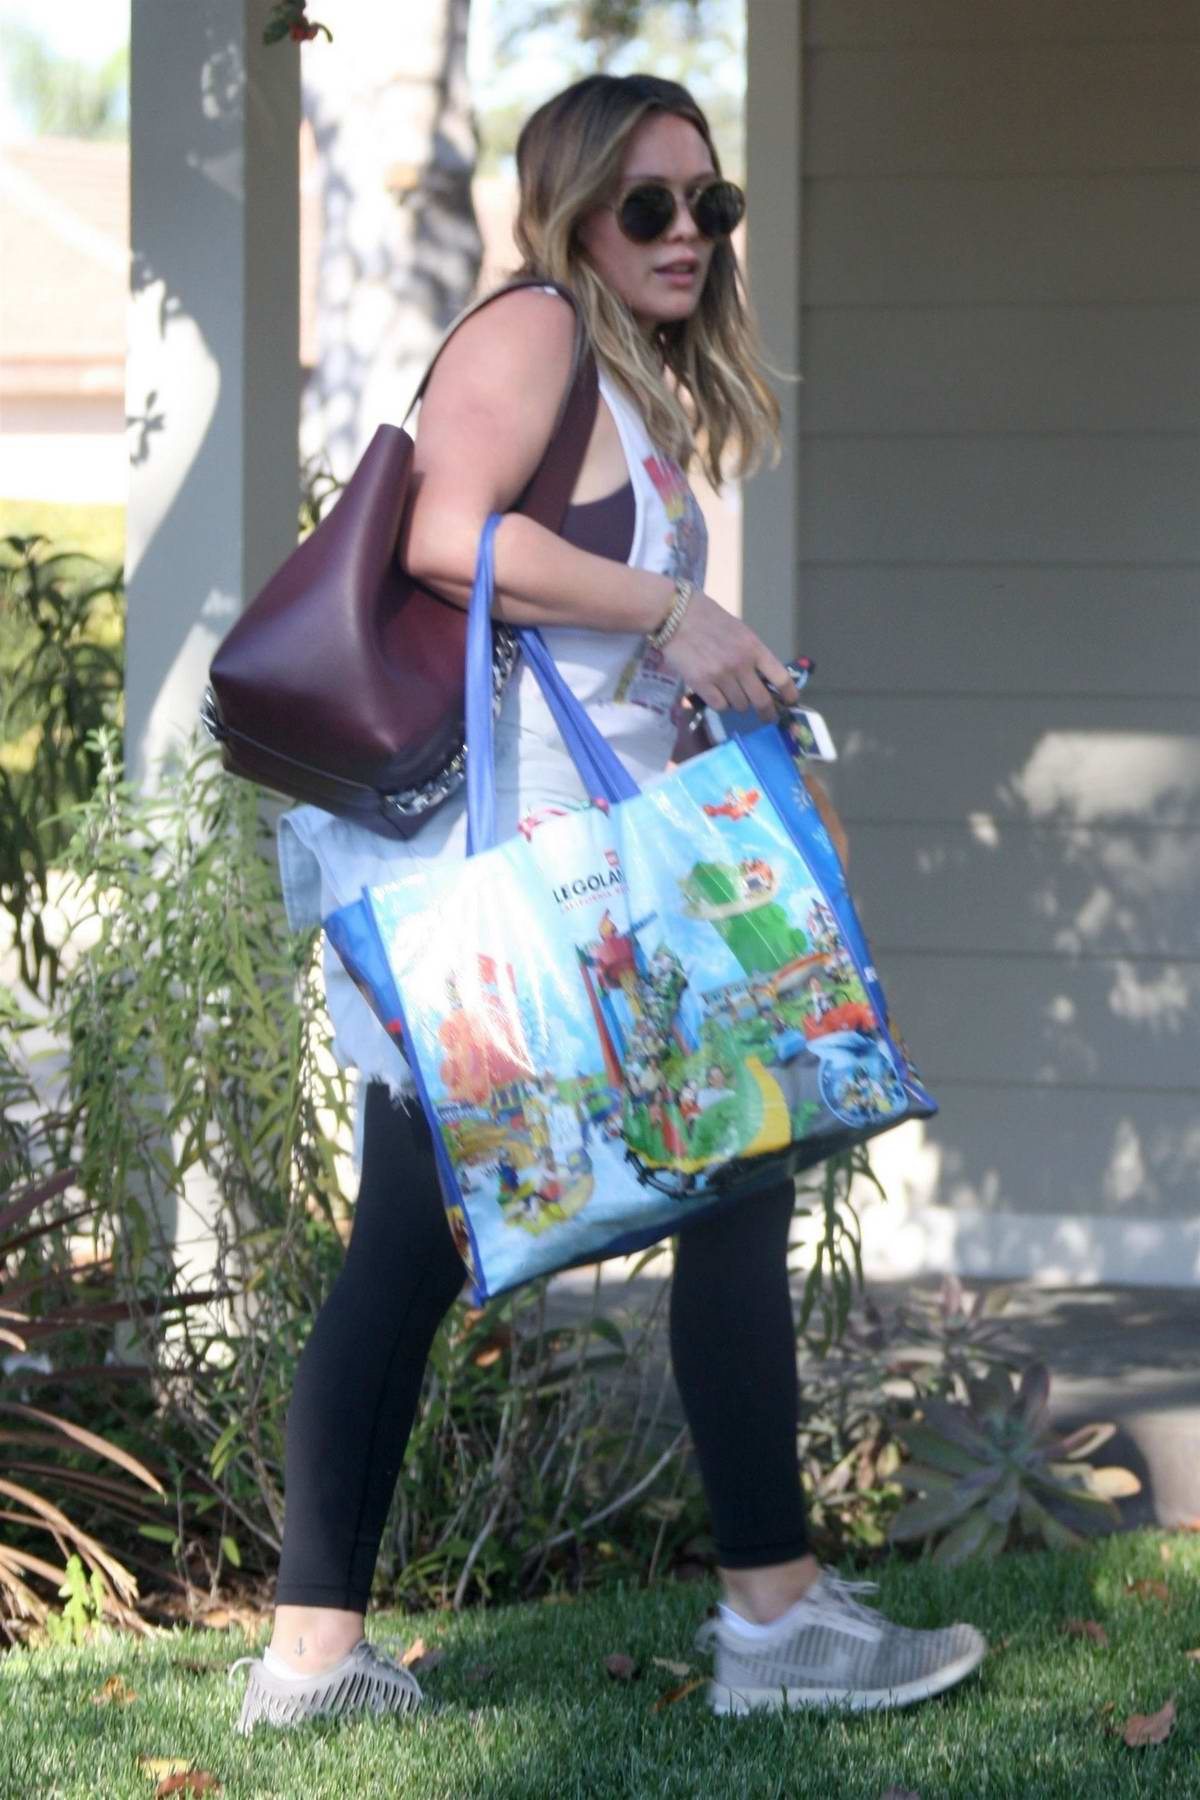 Hilary Duff arrive at her boyfriend Matthew Koma's house in Studio City, Los Angeles